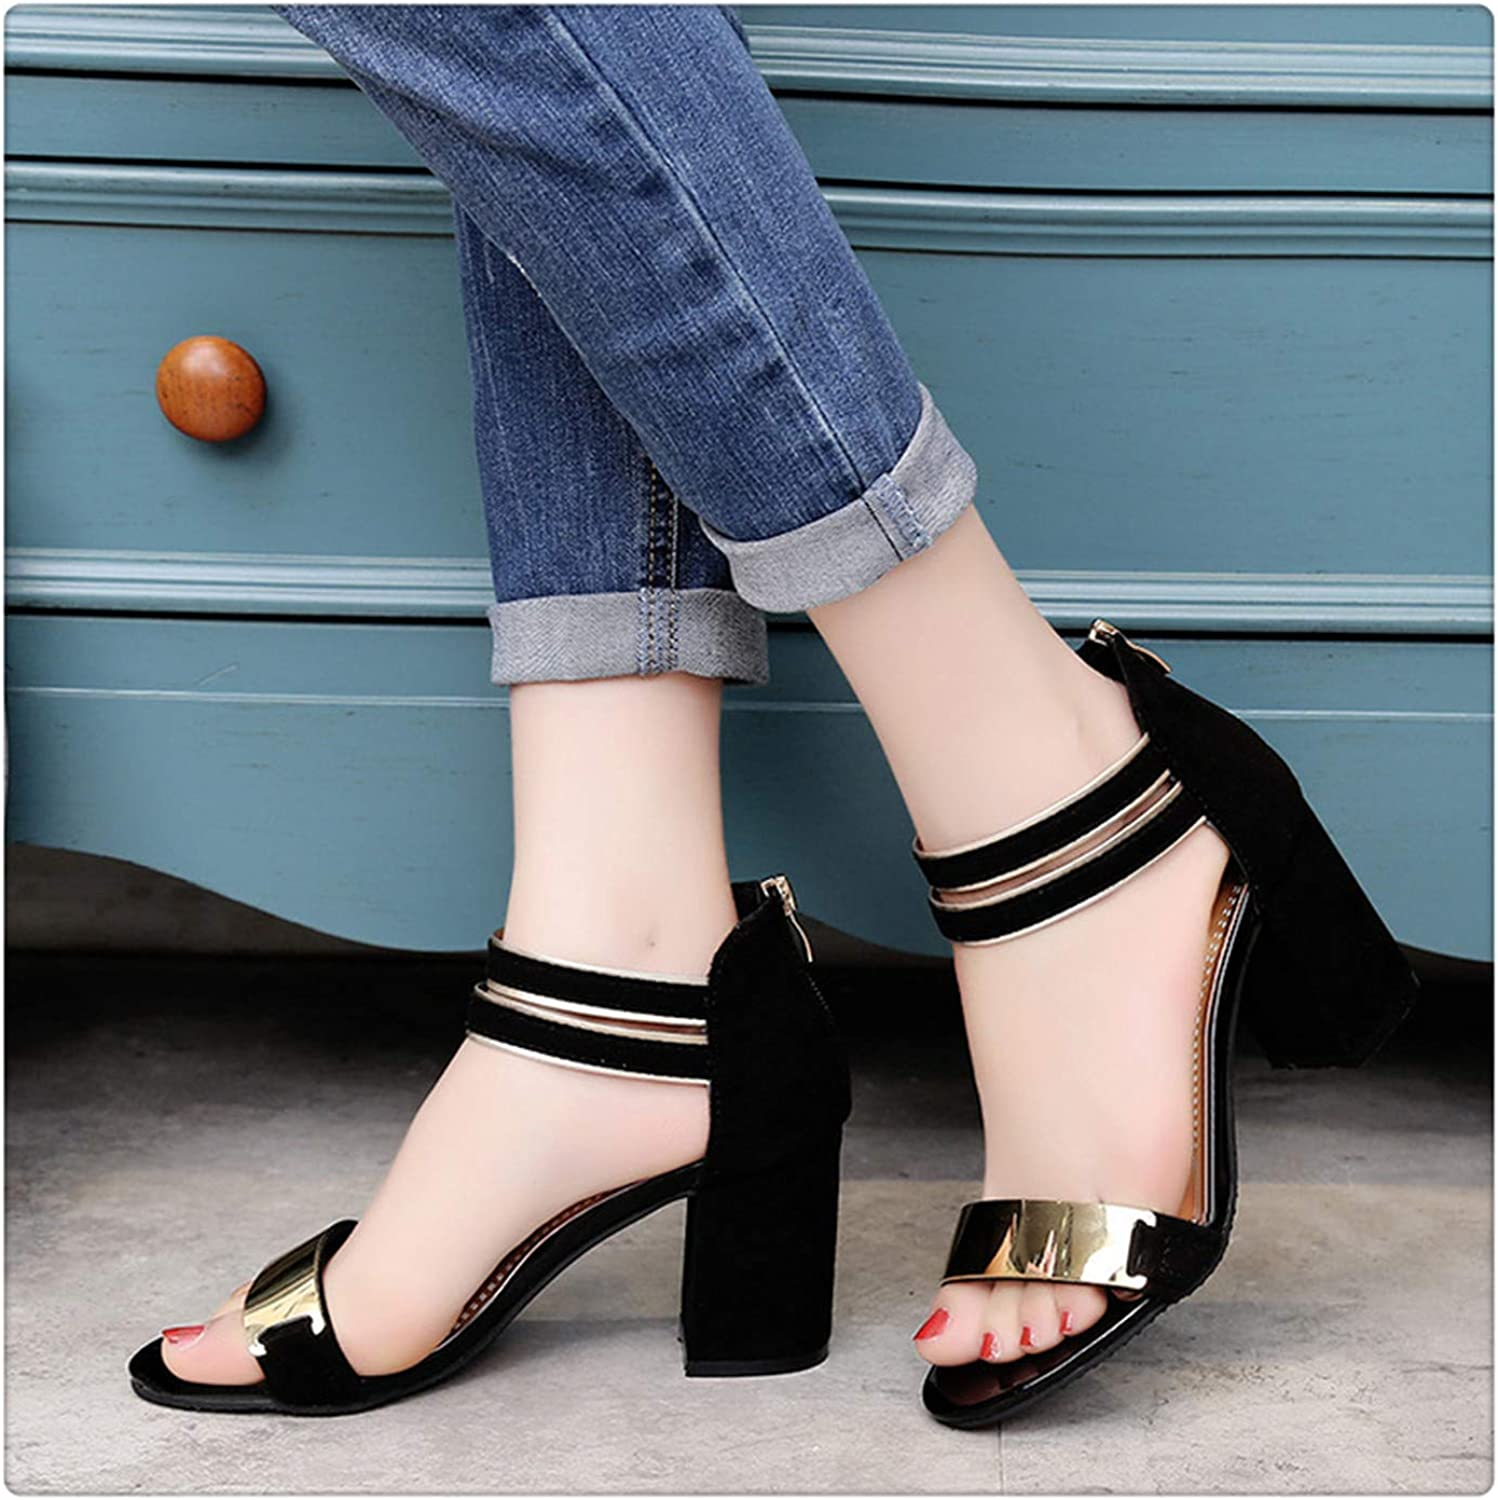 QUGKOP& Women Sandals Fashion Summer Women shoes Ladies Casual shoes Elegant Slip-on High-Heeled Sandals Woman Footwear Black 37